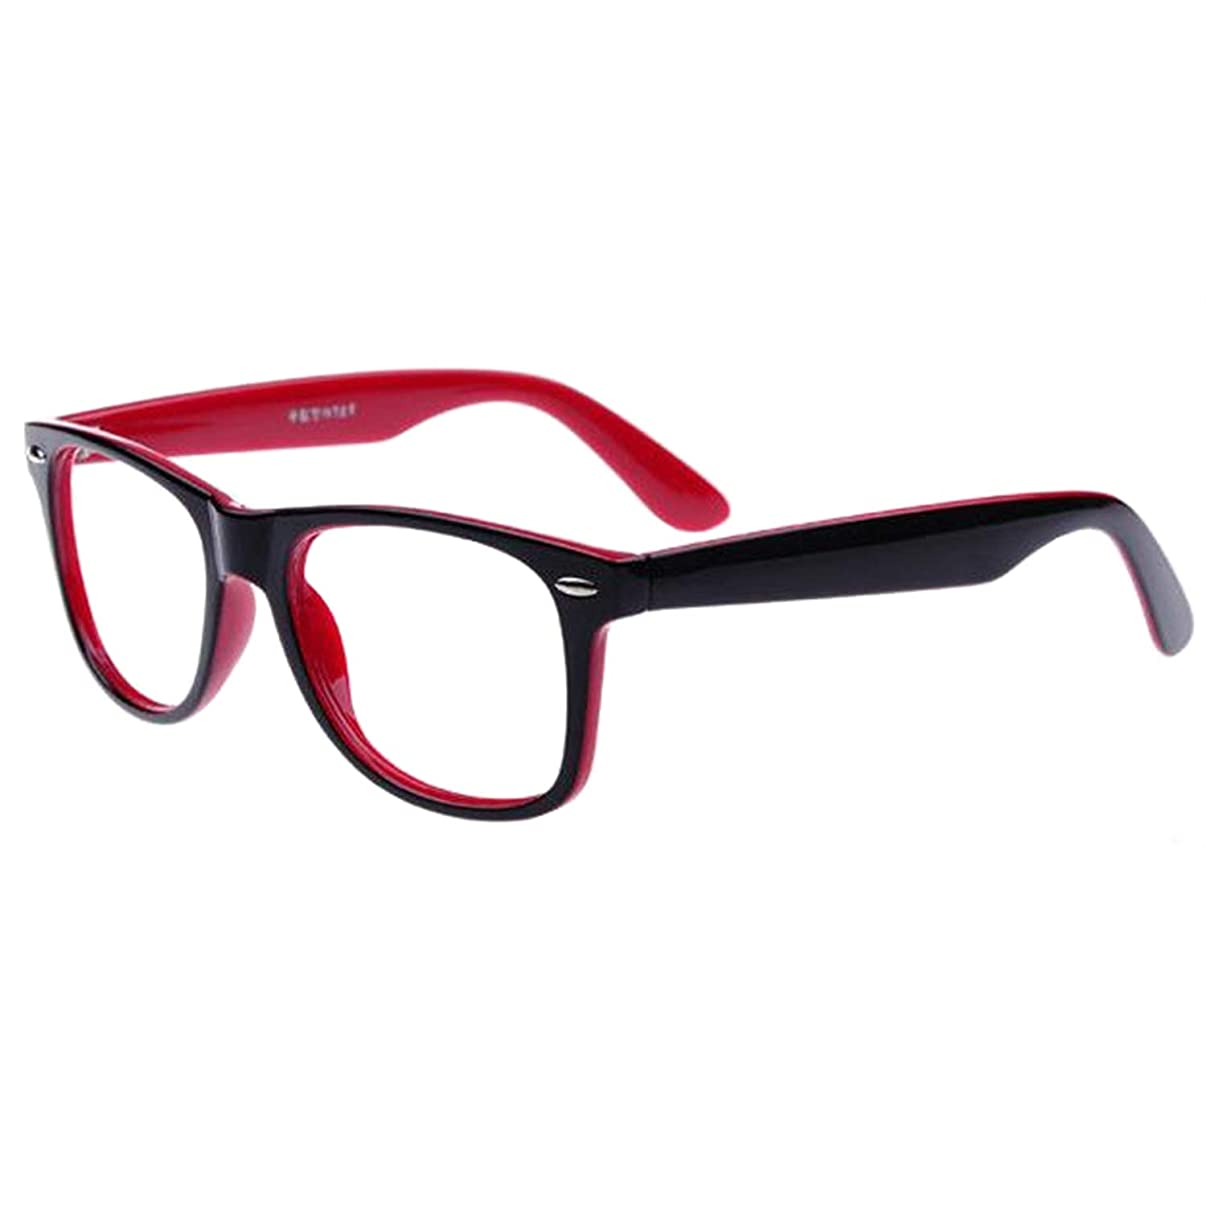 Blue Light Blocking Computer/Gaming Readers Glasses Anti Glare Anti Eyestrain Clear Lens Visual Color Real Round Vintage Hipster Frame,0.00,No Magnification (Outside Black Inside red)